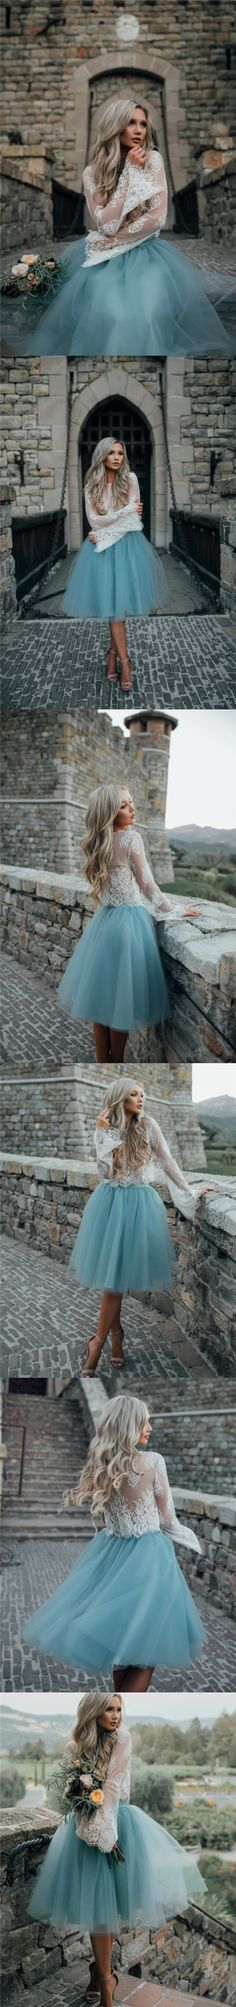 2017 Homecoming Dress Beautiful Two Pieces Lace Short Prom Dress Party Dress JKS059